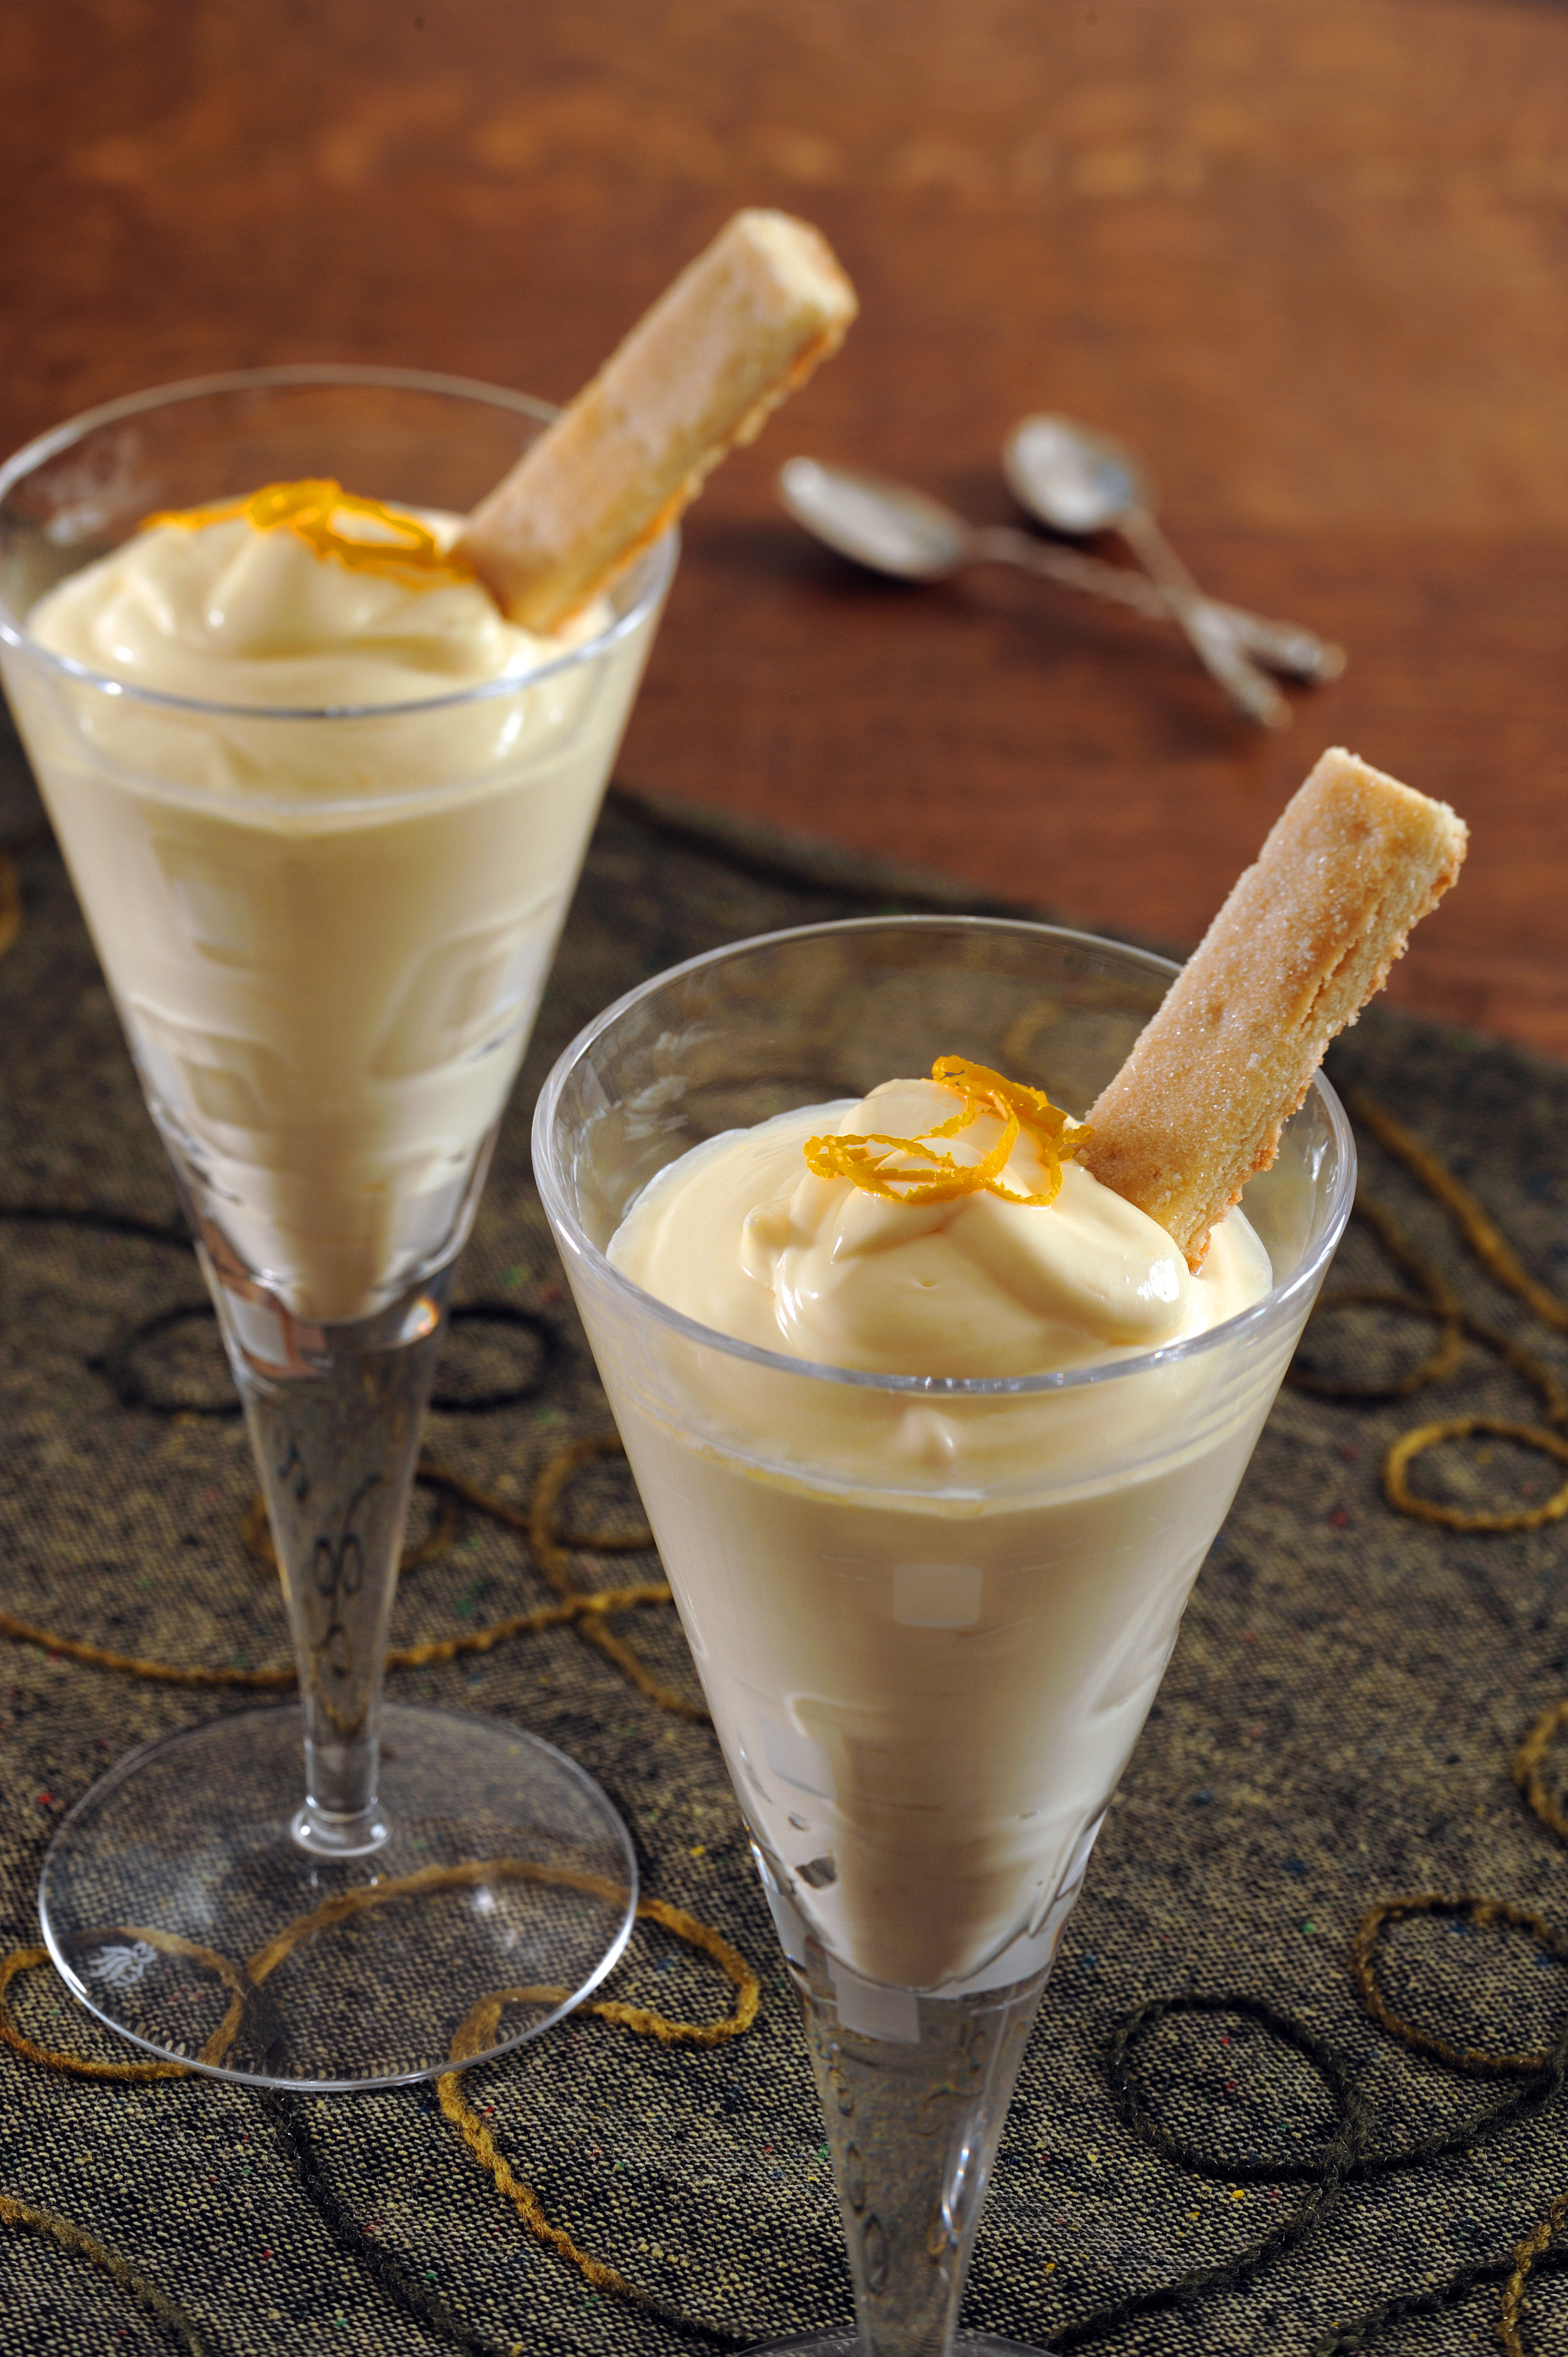 A delightful dessert and other Scottish recipes will be demonstrated by Wendy Barrie at Burns Unbound!